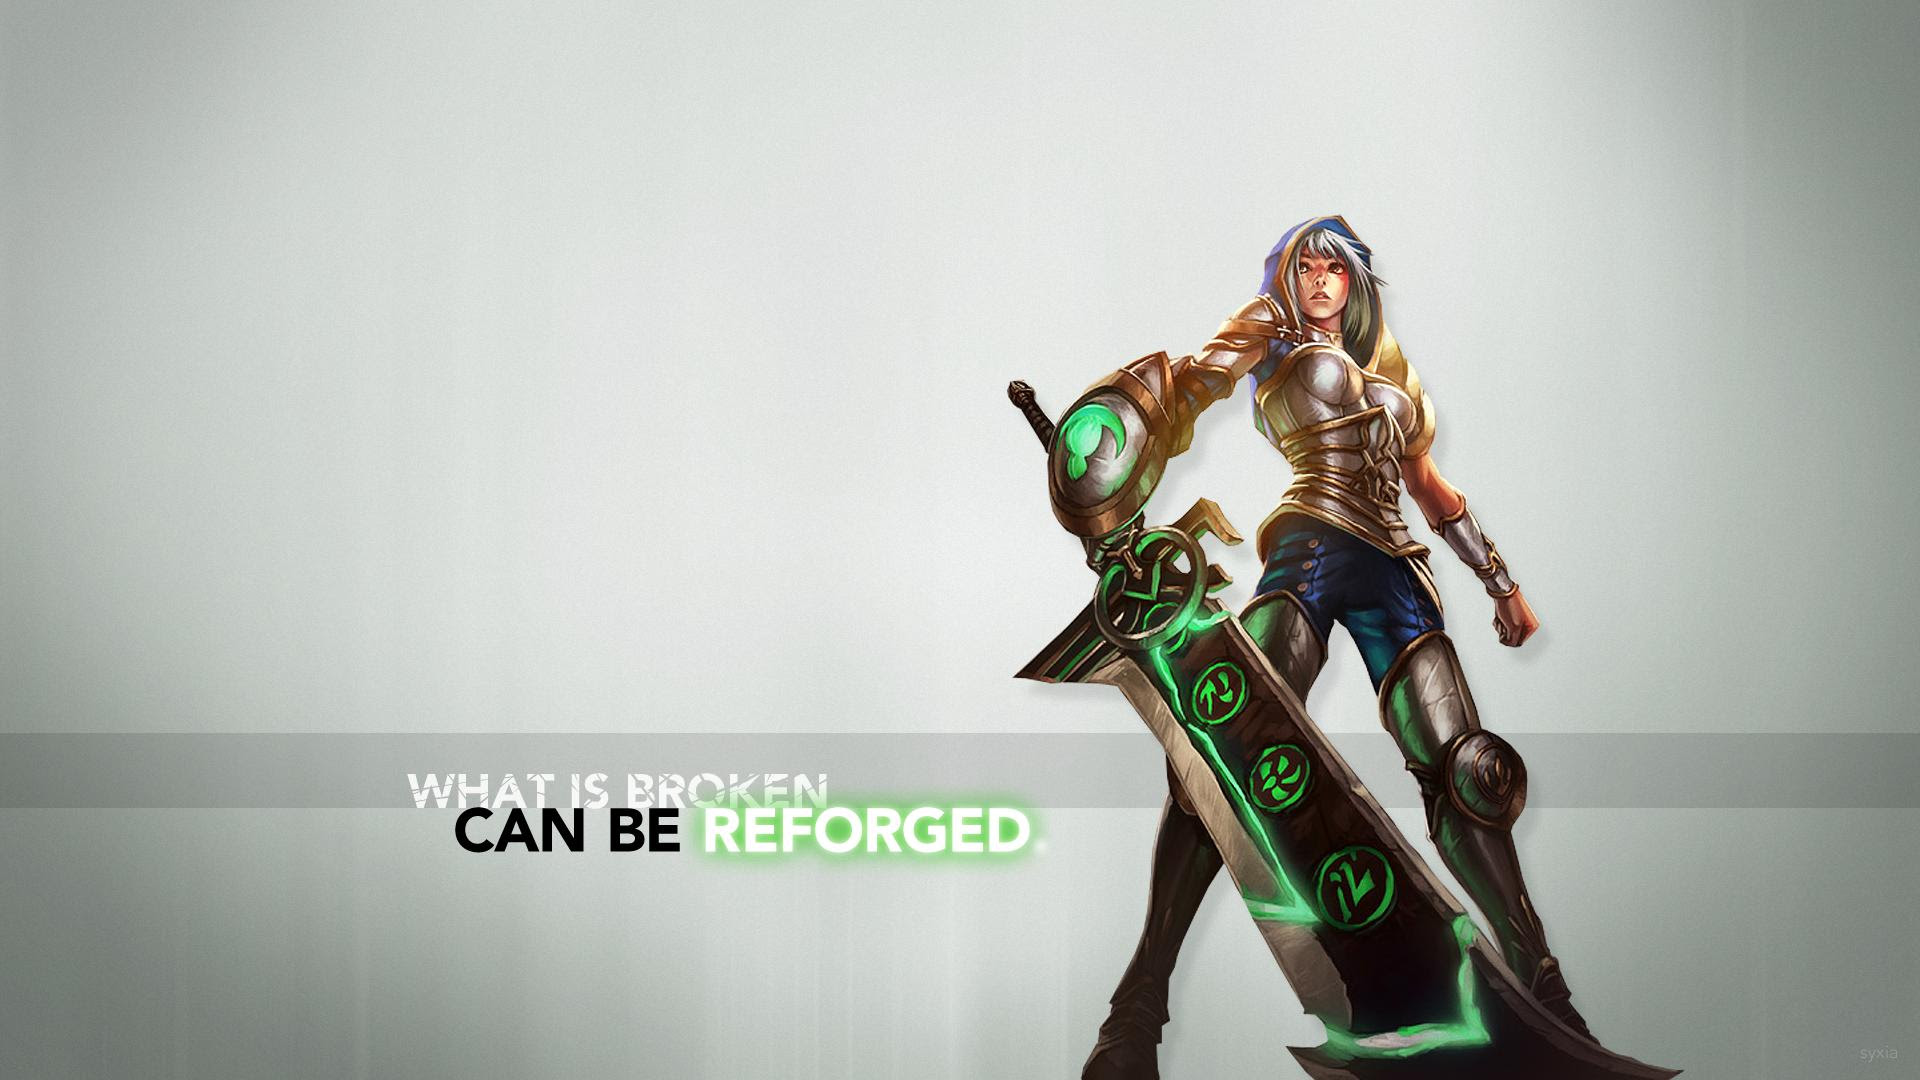 Riven Wallpaper As Requested Leagueoflegends